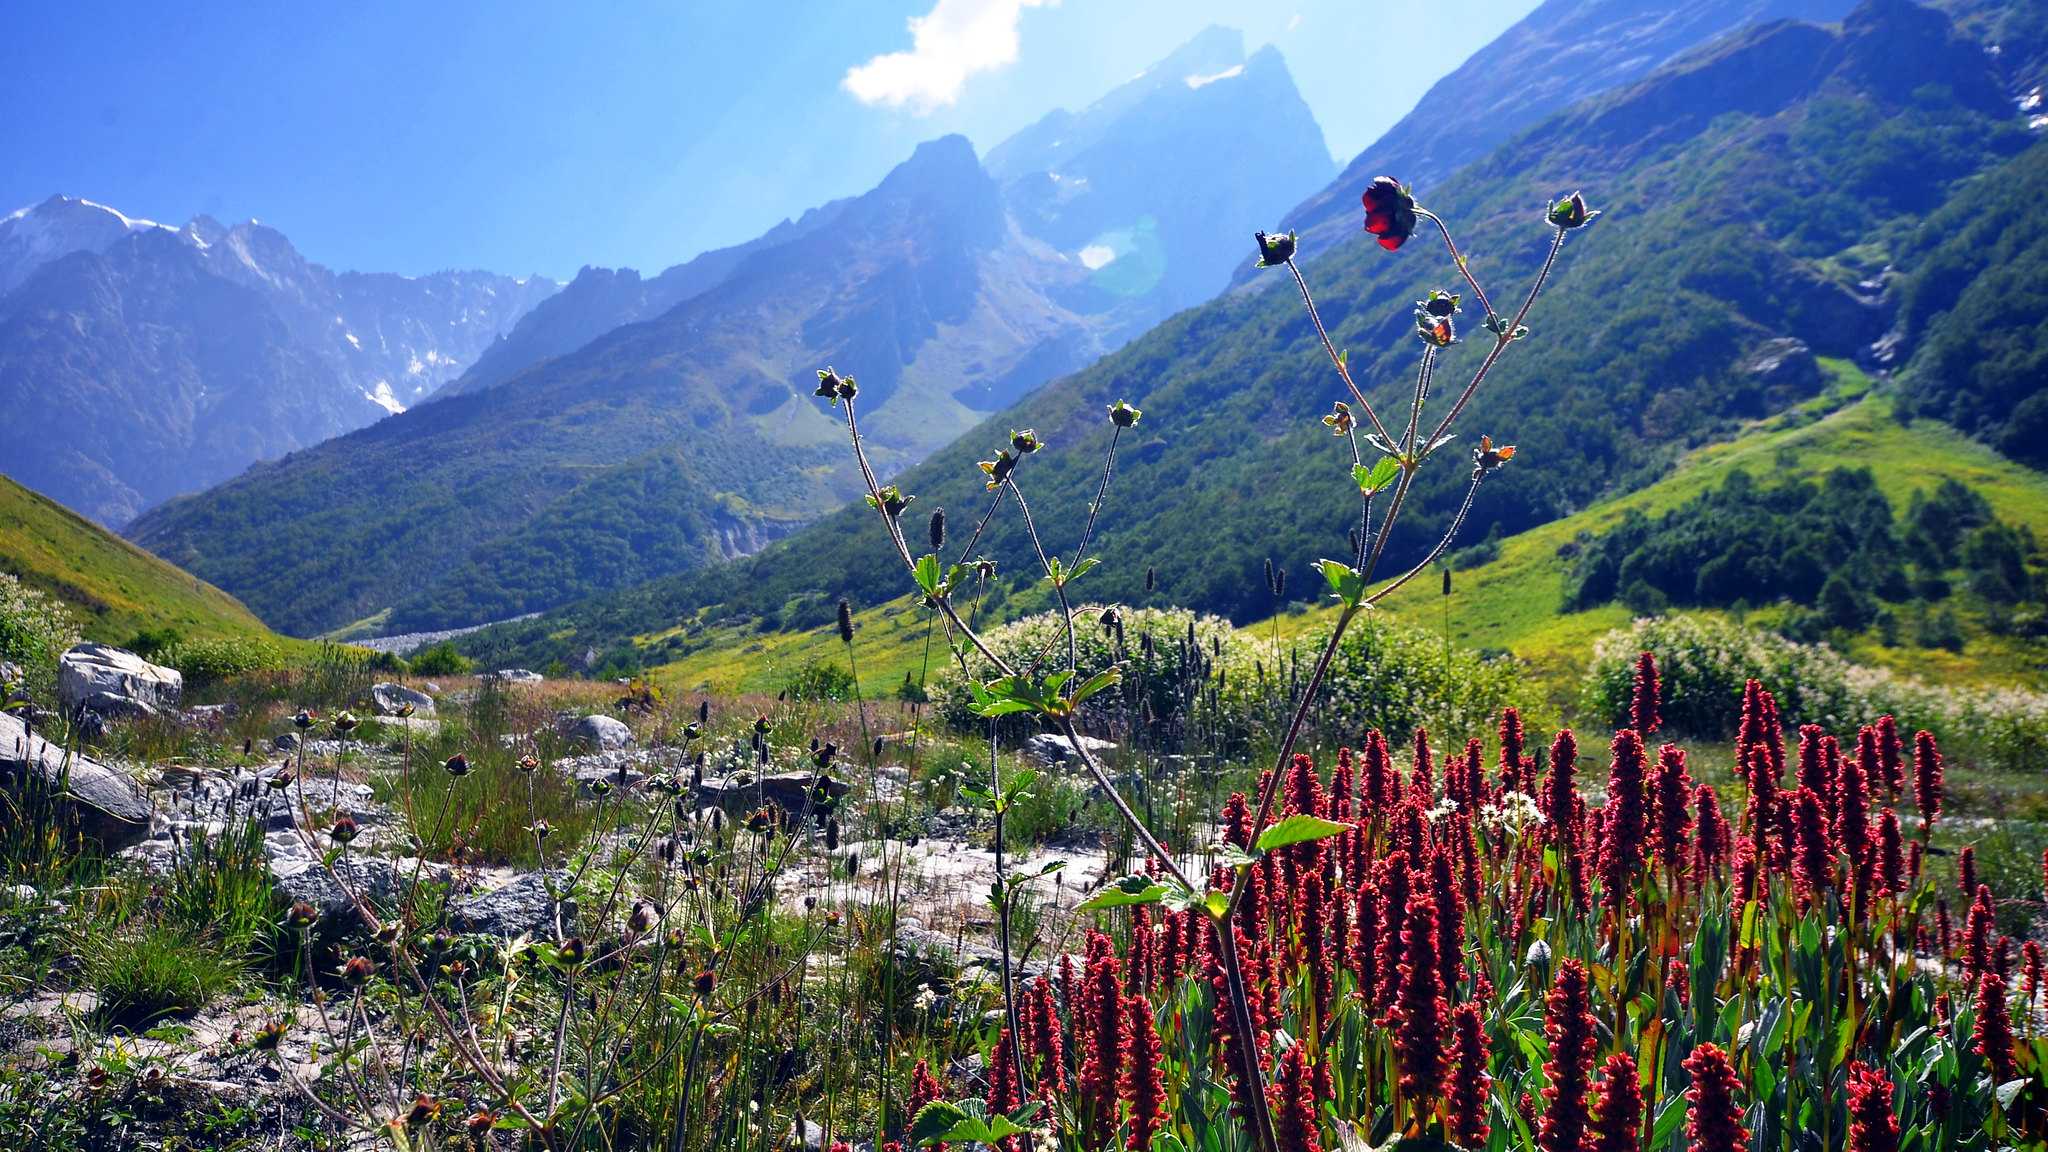 On Top of the World in the Valley of Flowers